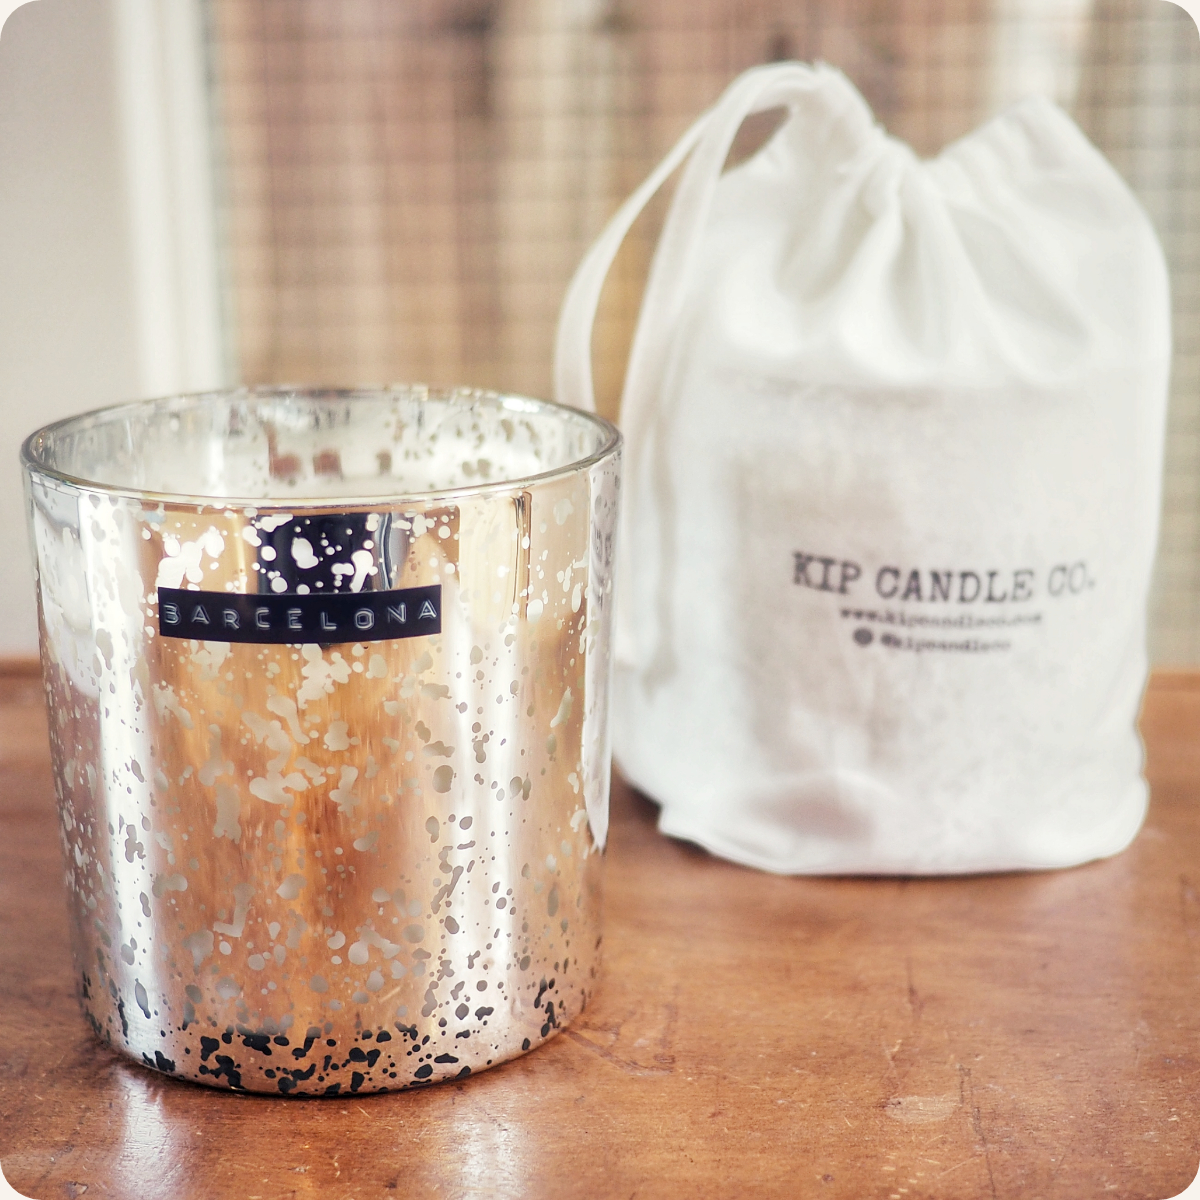 Barcelona Silver Coffee Table Candle.